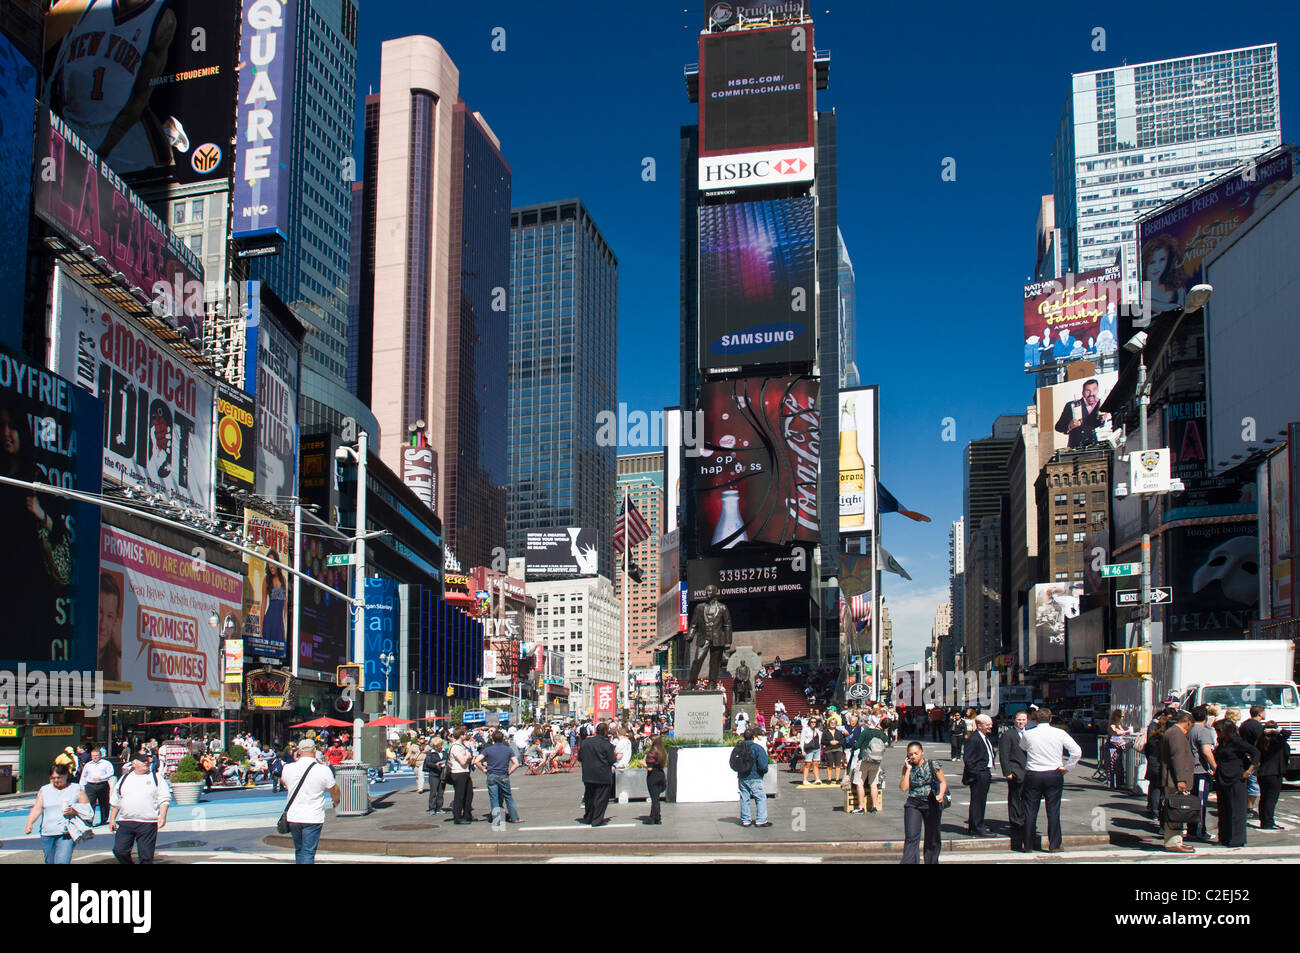 Northern side Two Times Square electronic billboard building with blue sky background, Manhattan, New York City, - Stock Image